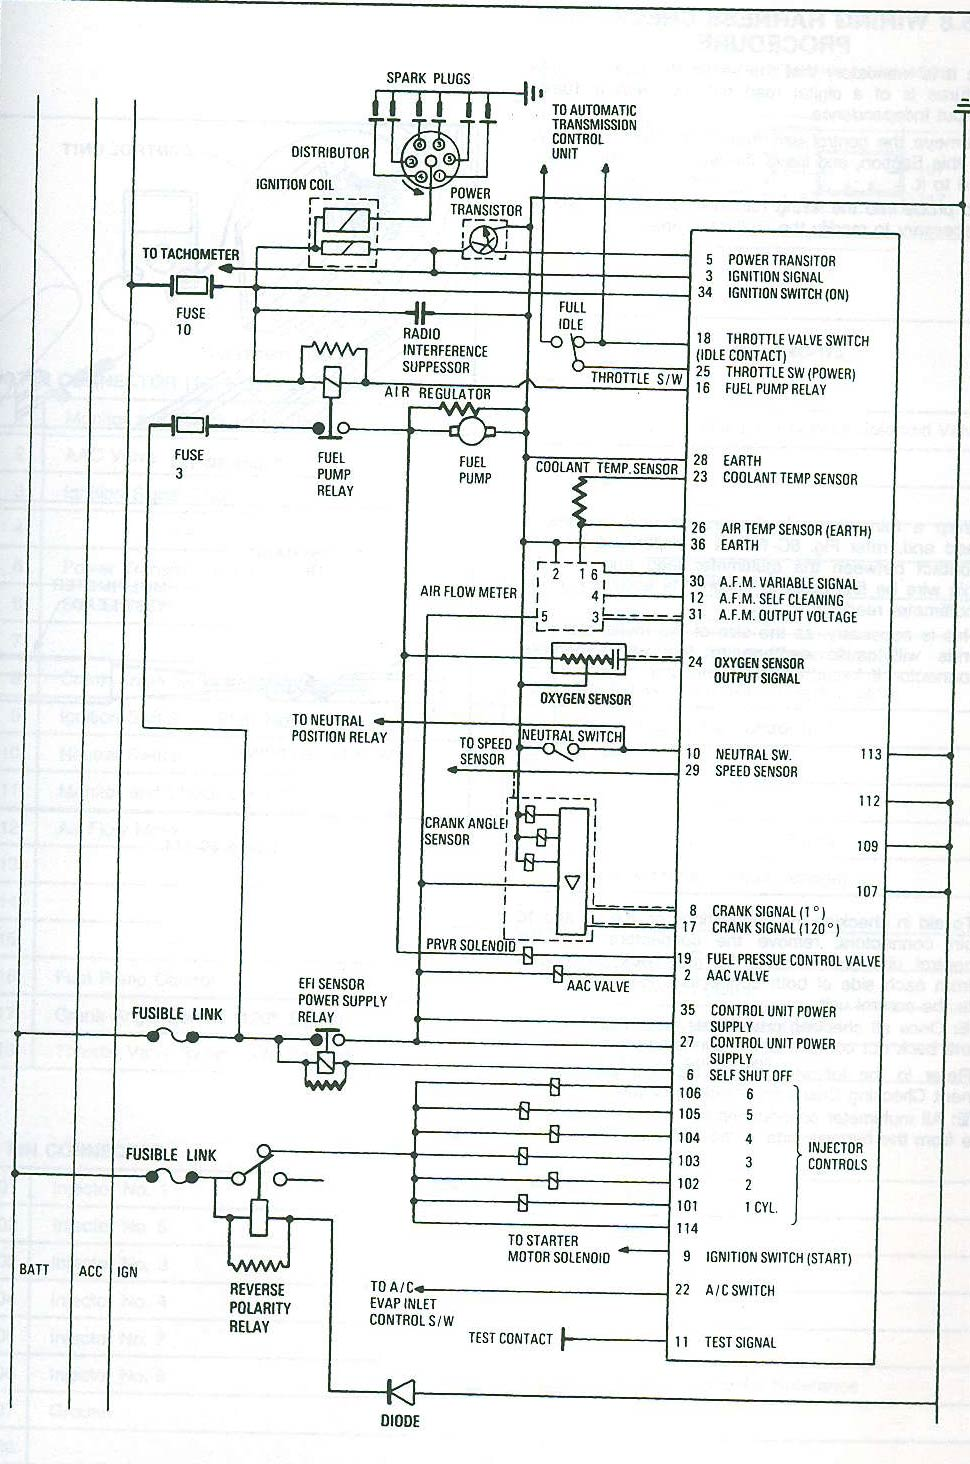 Nissan Rb25 Wiring Diagram – stateofindiana.co